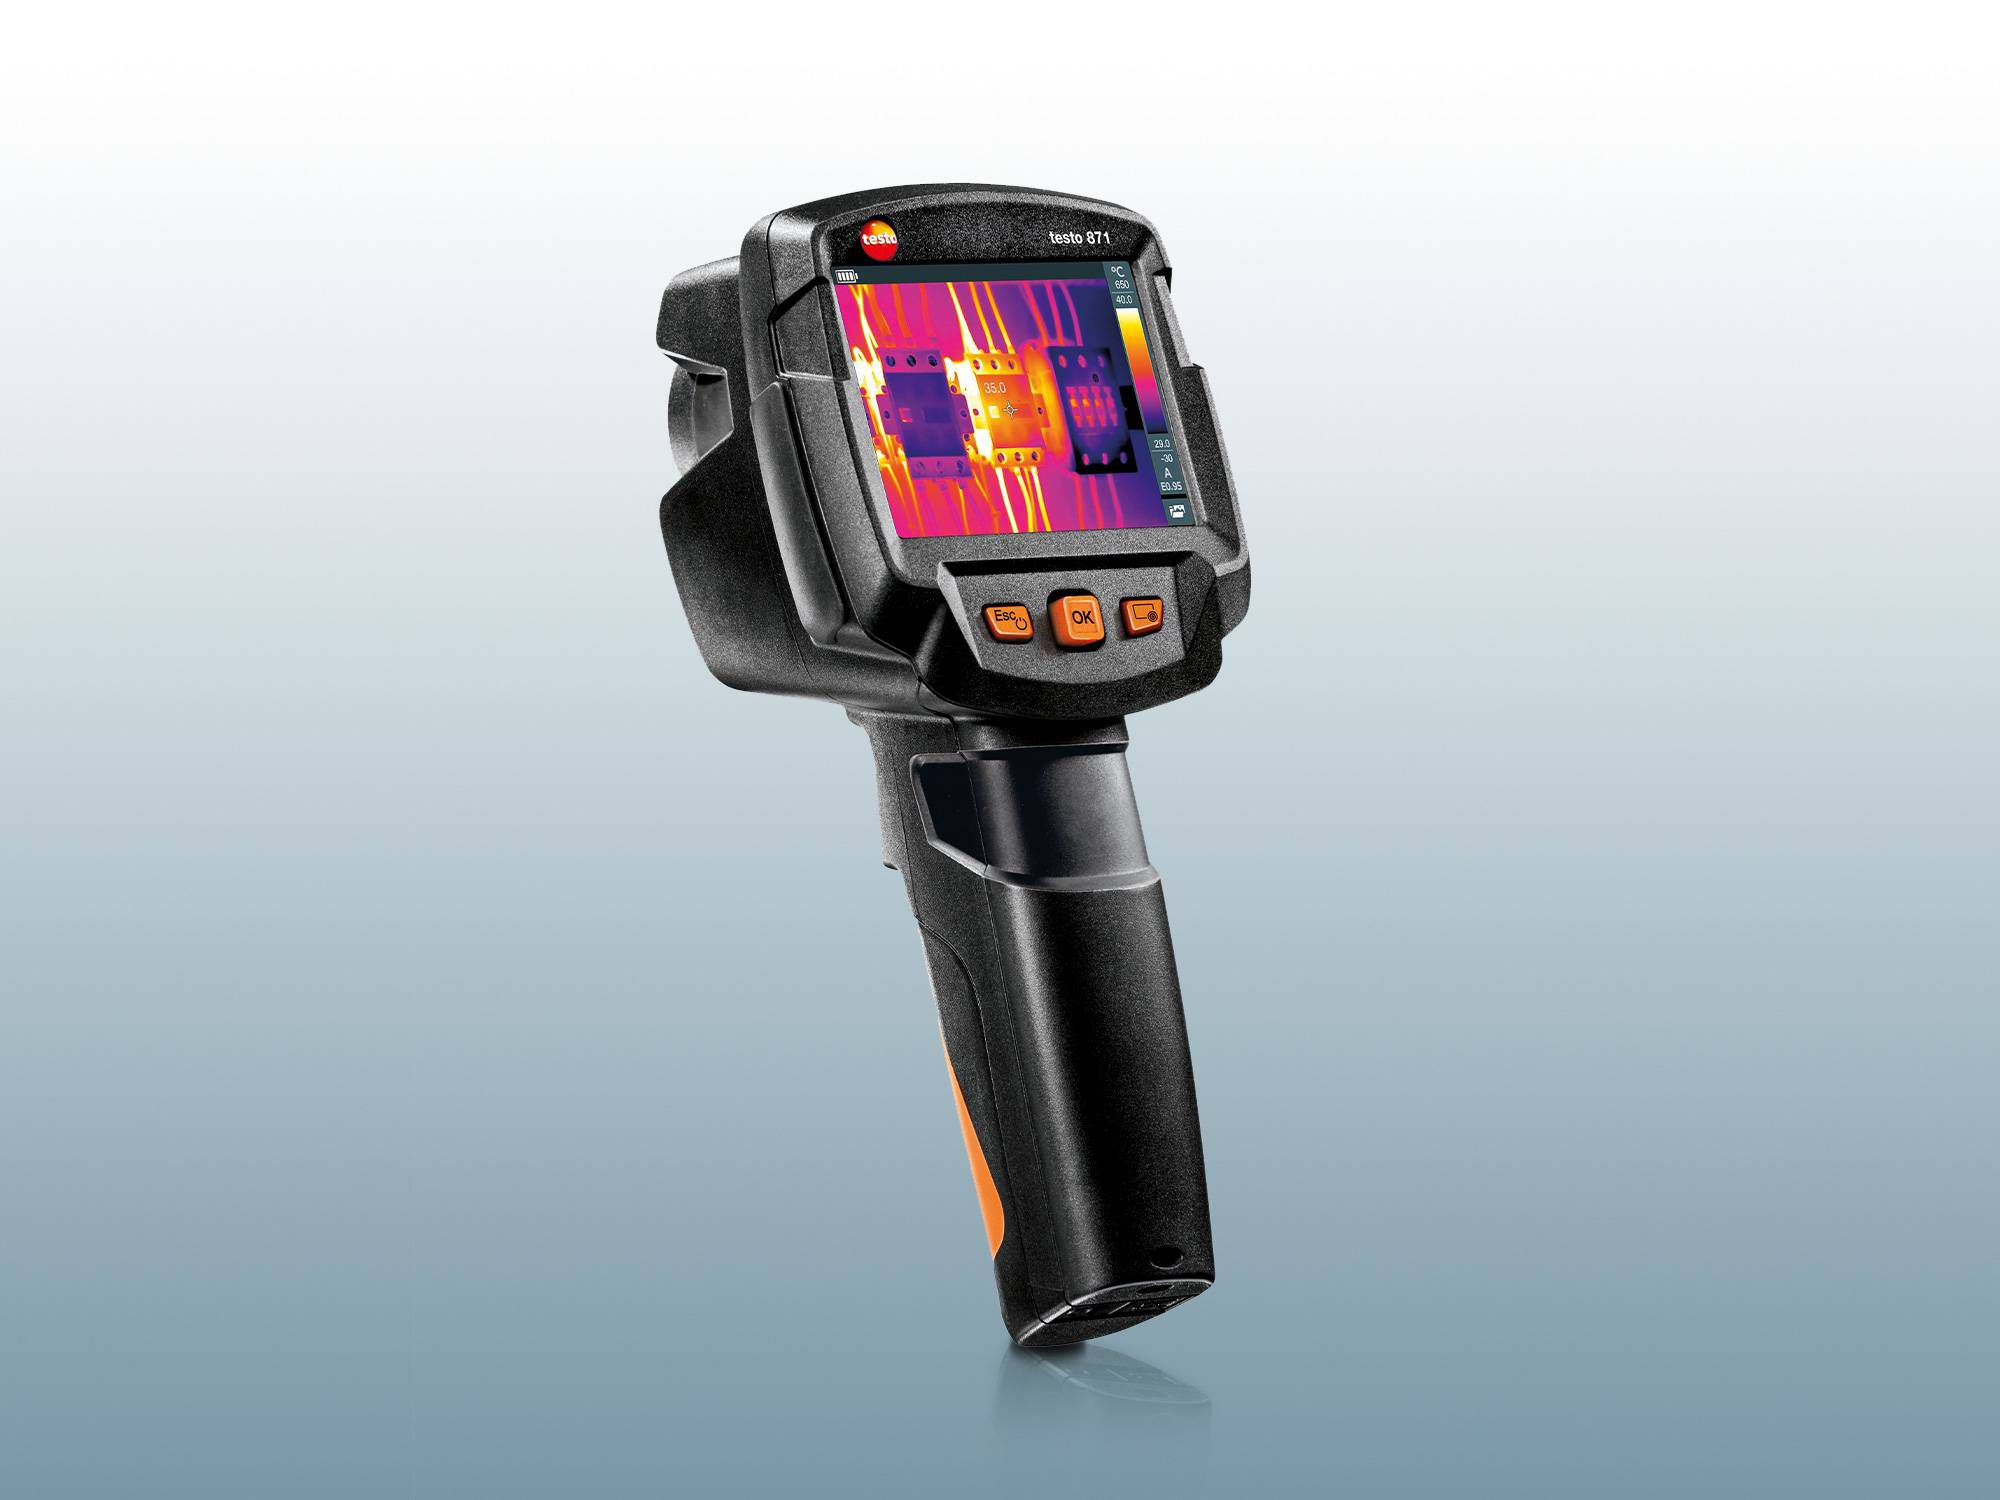 testo 871 thermal imager